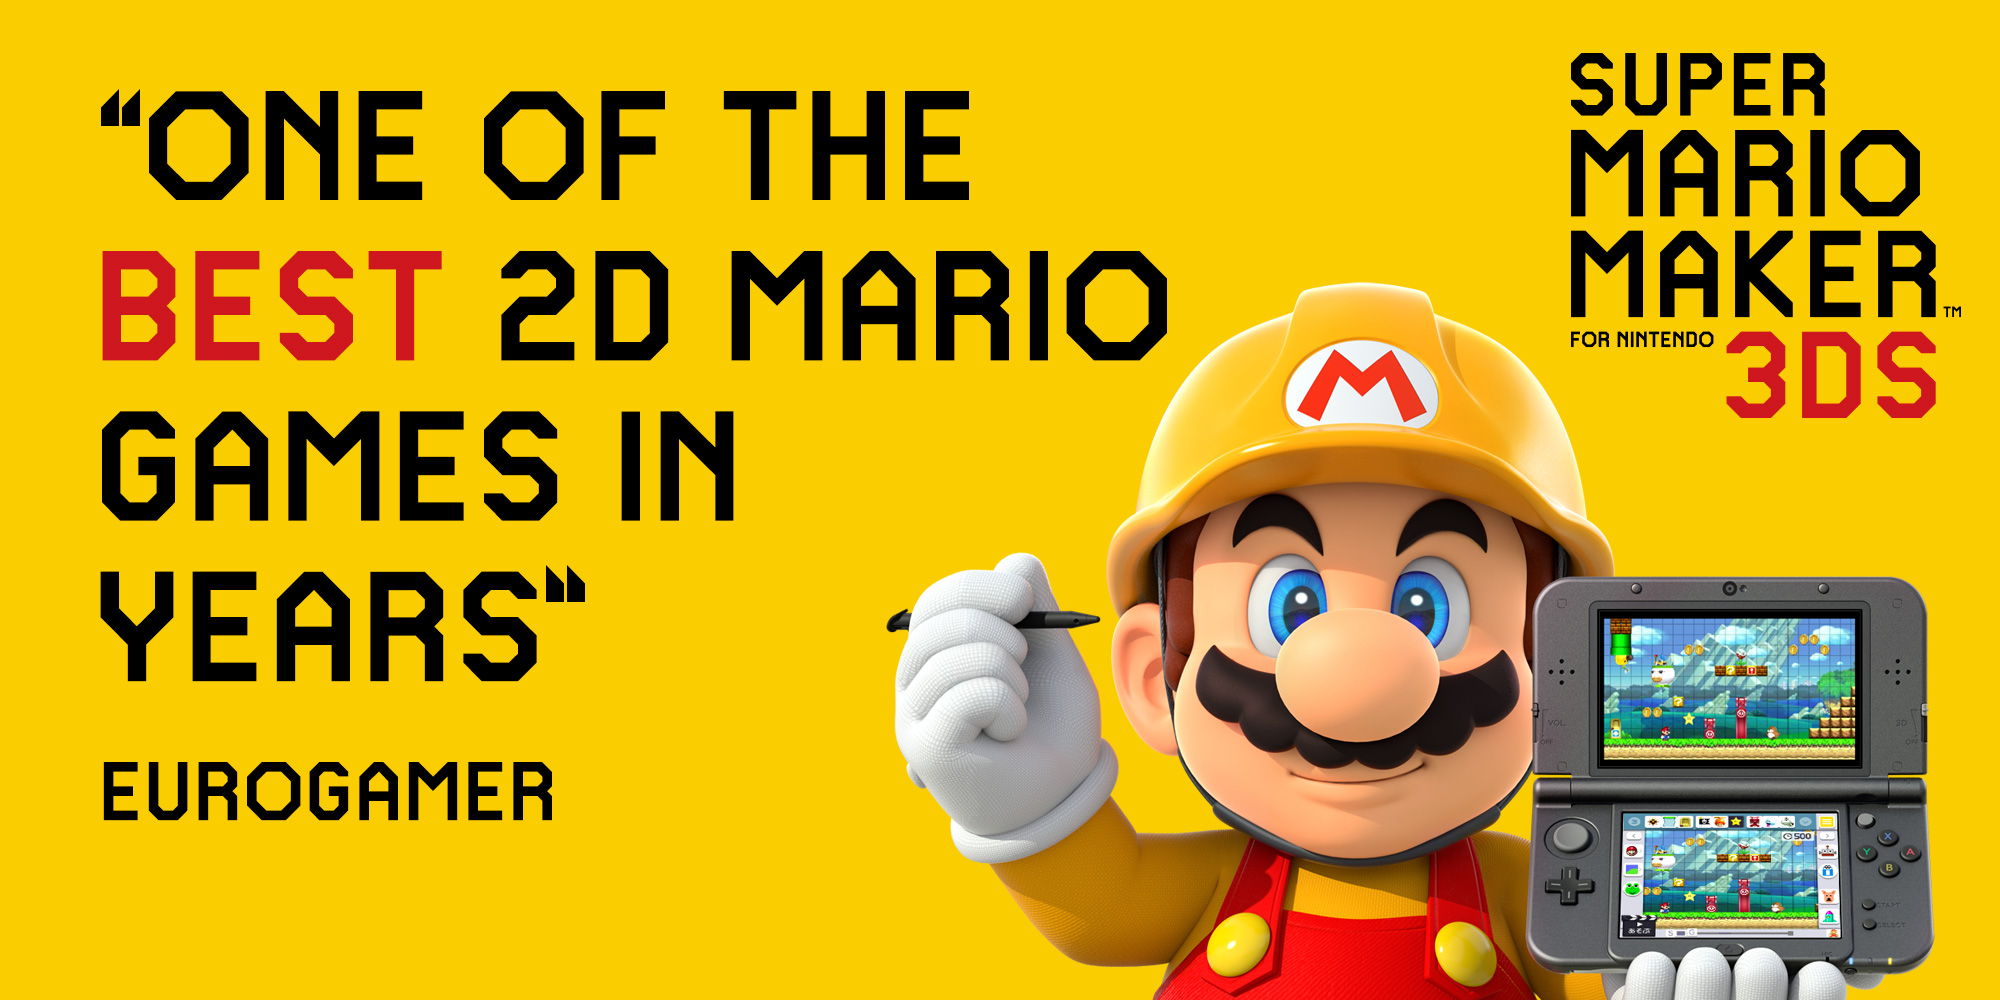 Find out what critics think of Super Mario Maker for Nintendo 3DS